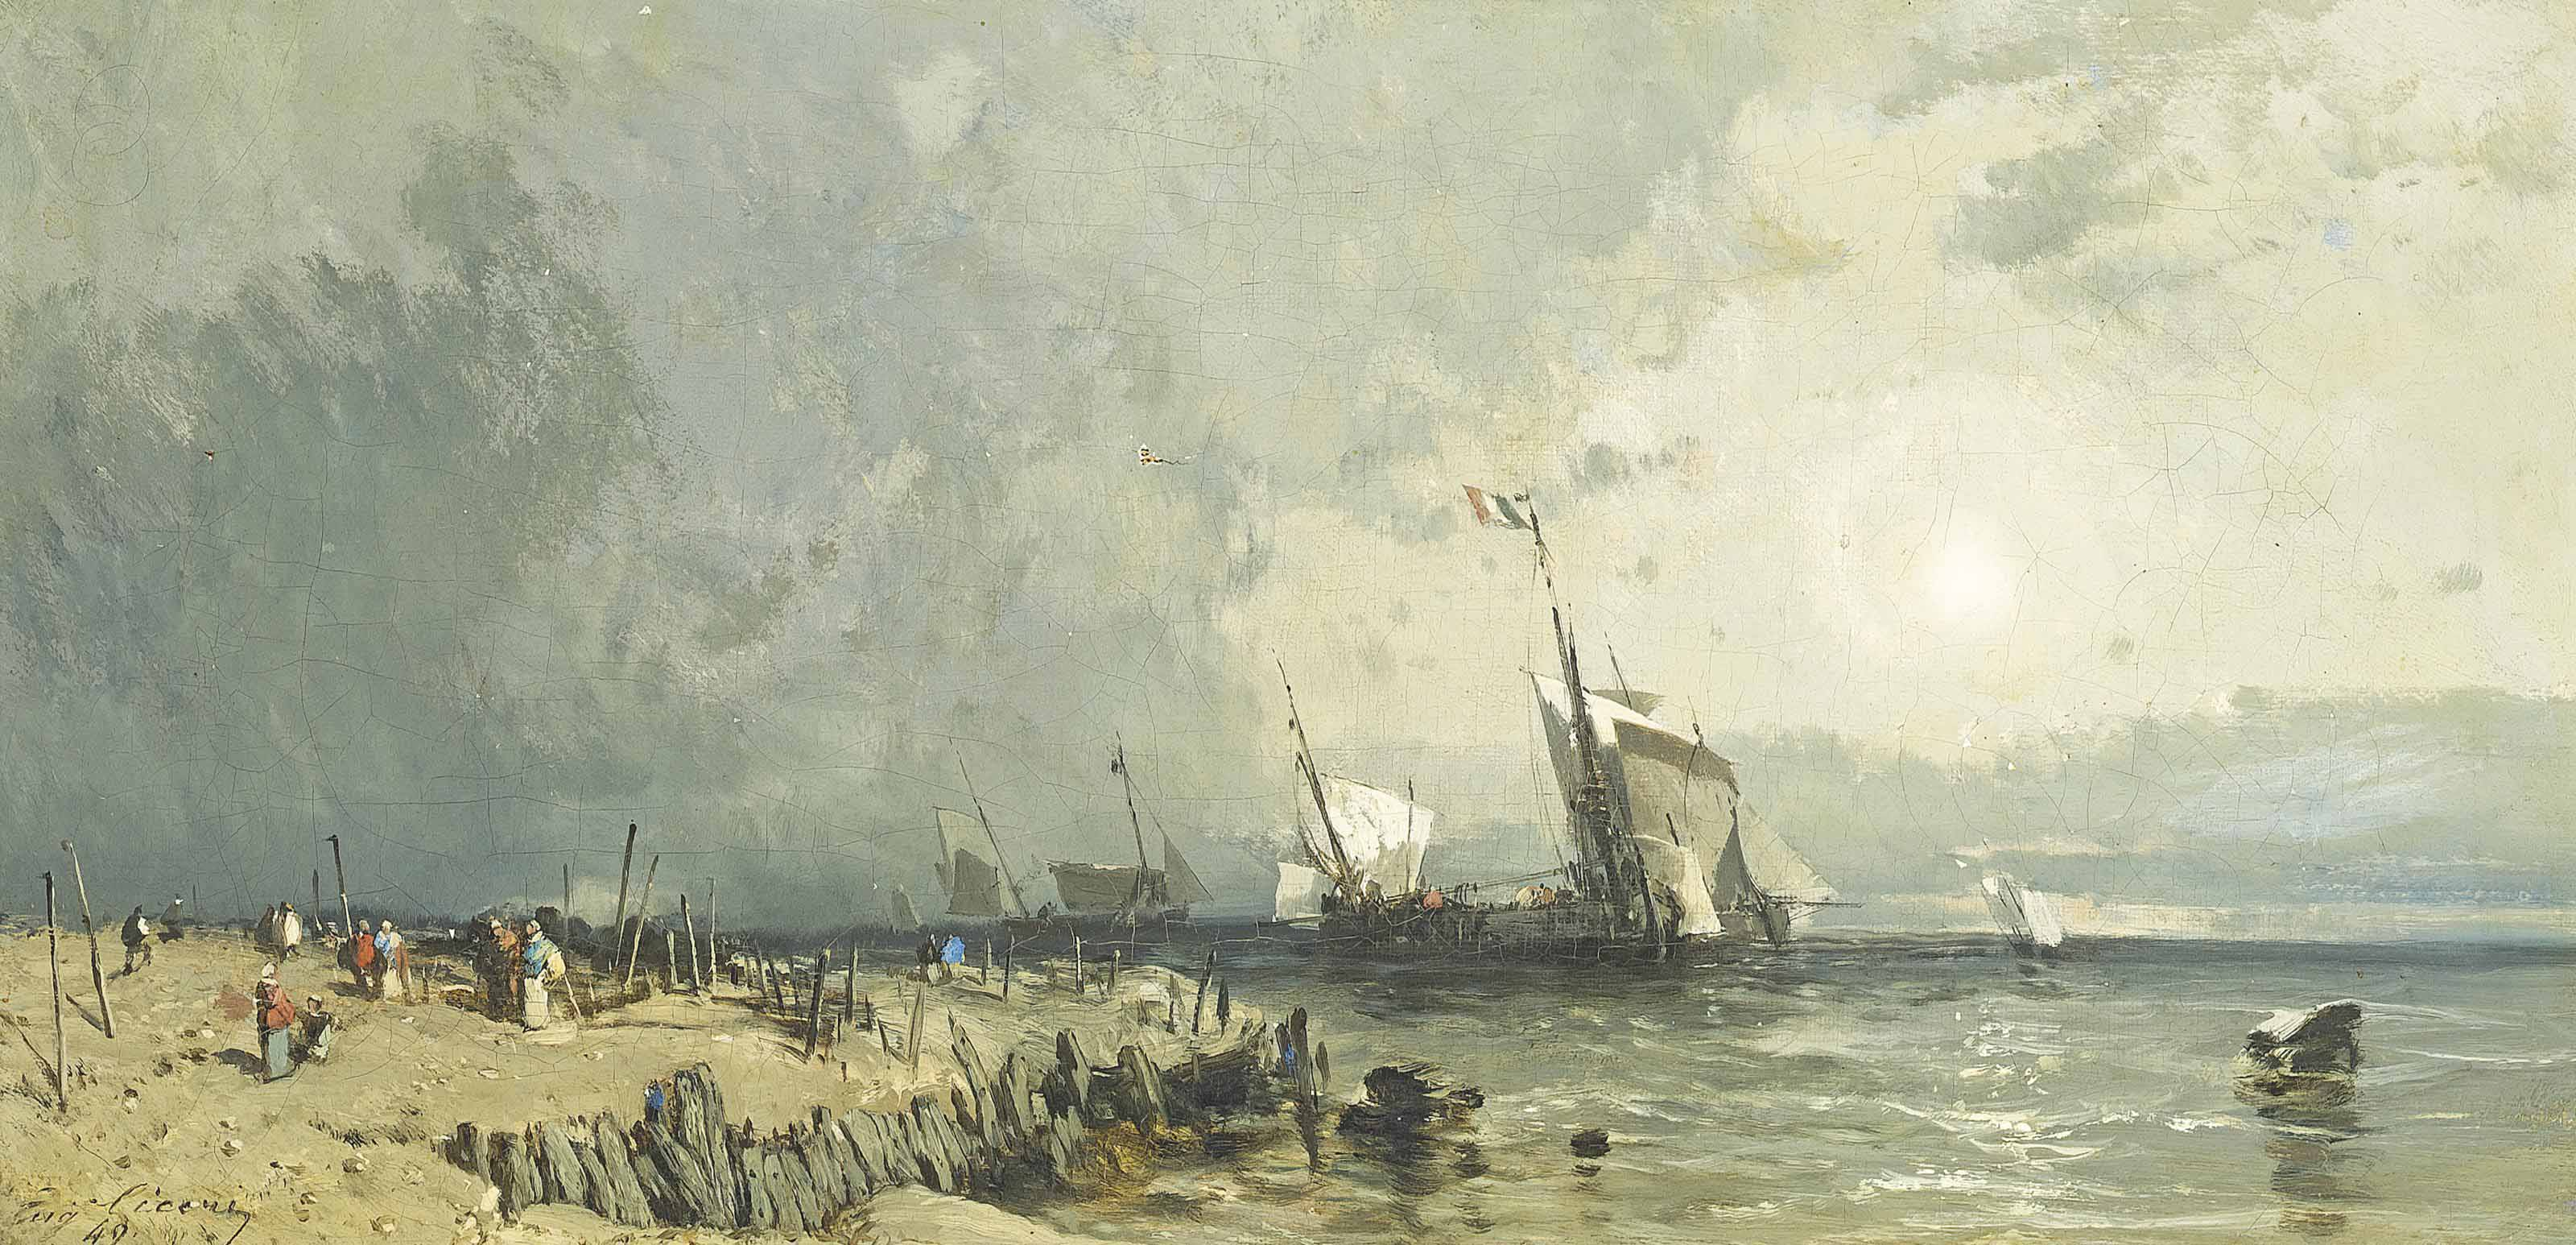 Fishing vessels by the coast